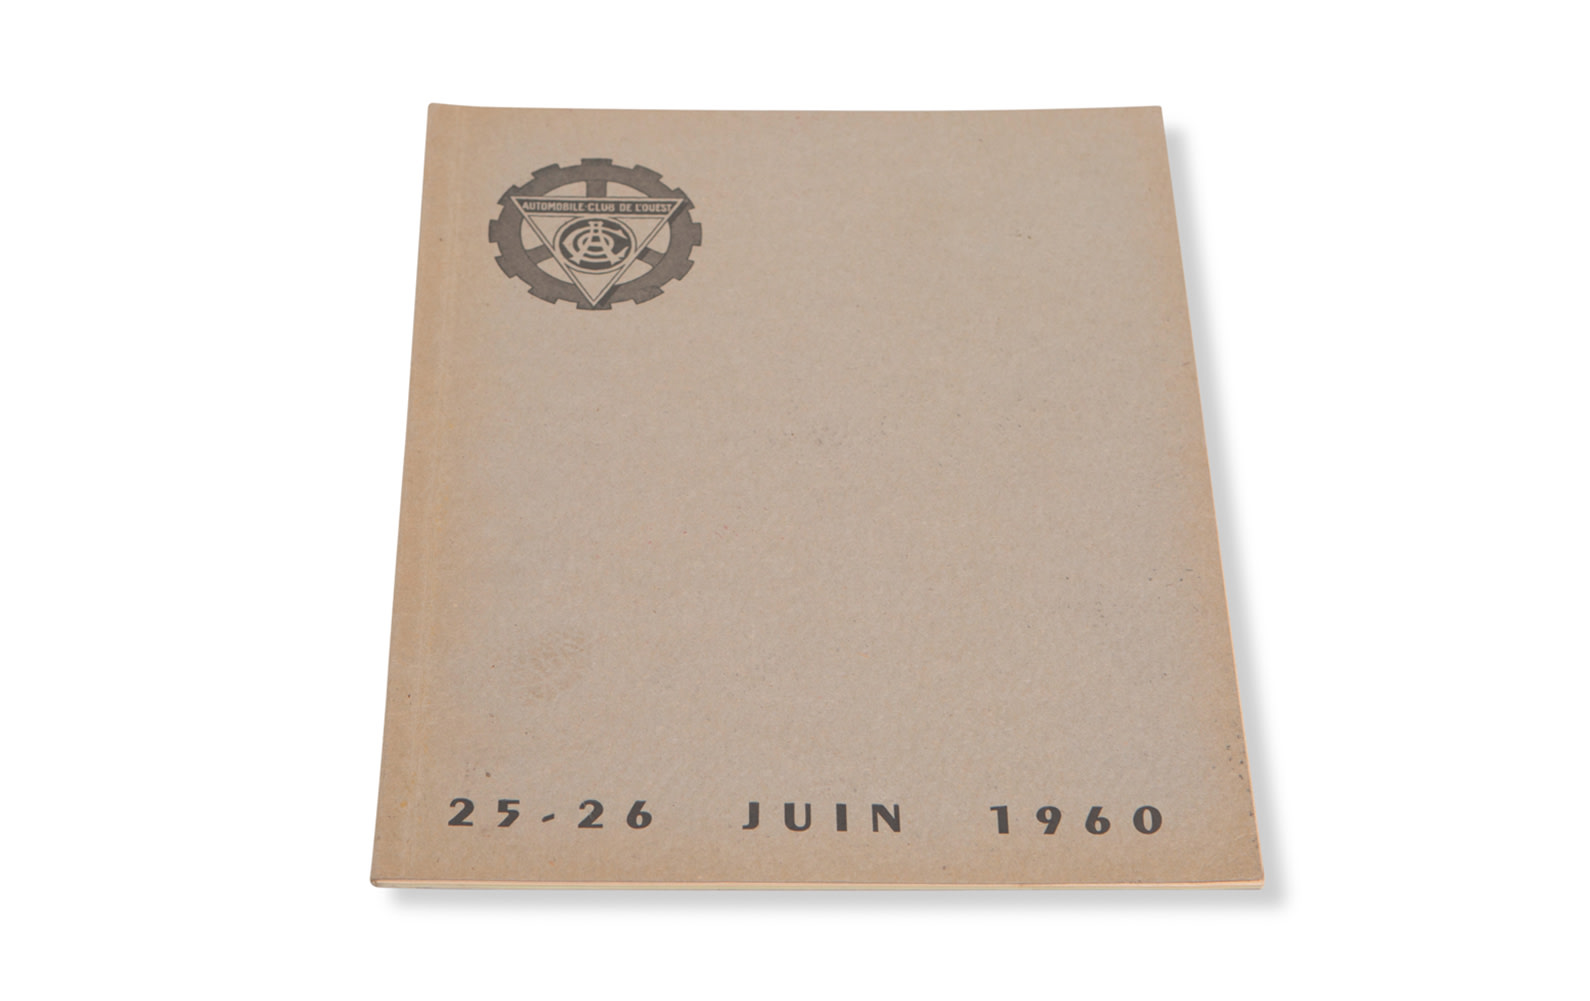 1960 24 Hours of Le Mans Regulations Book